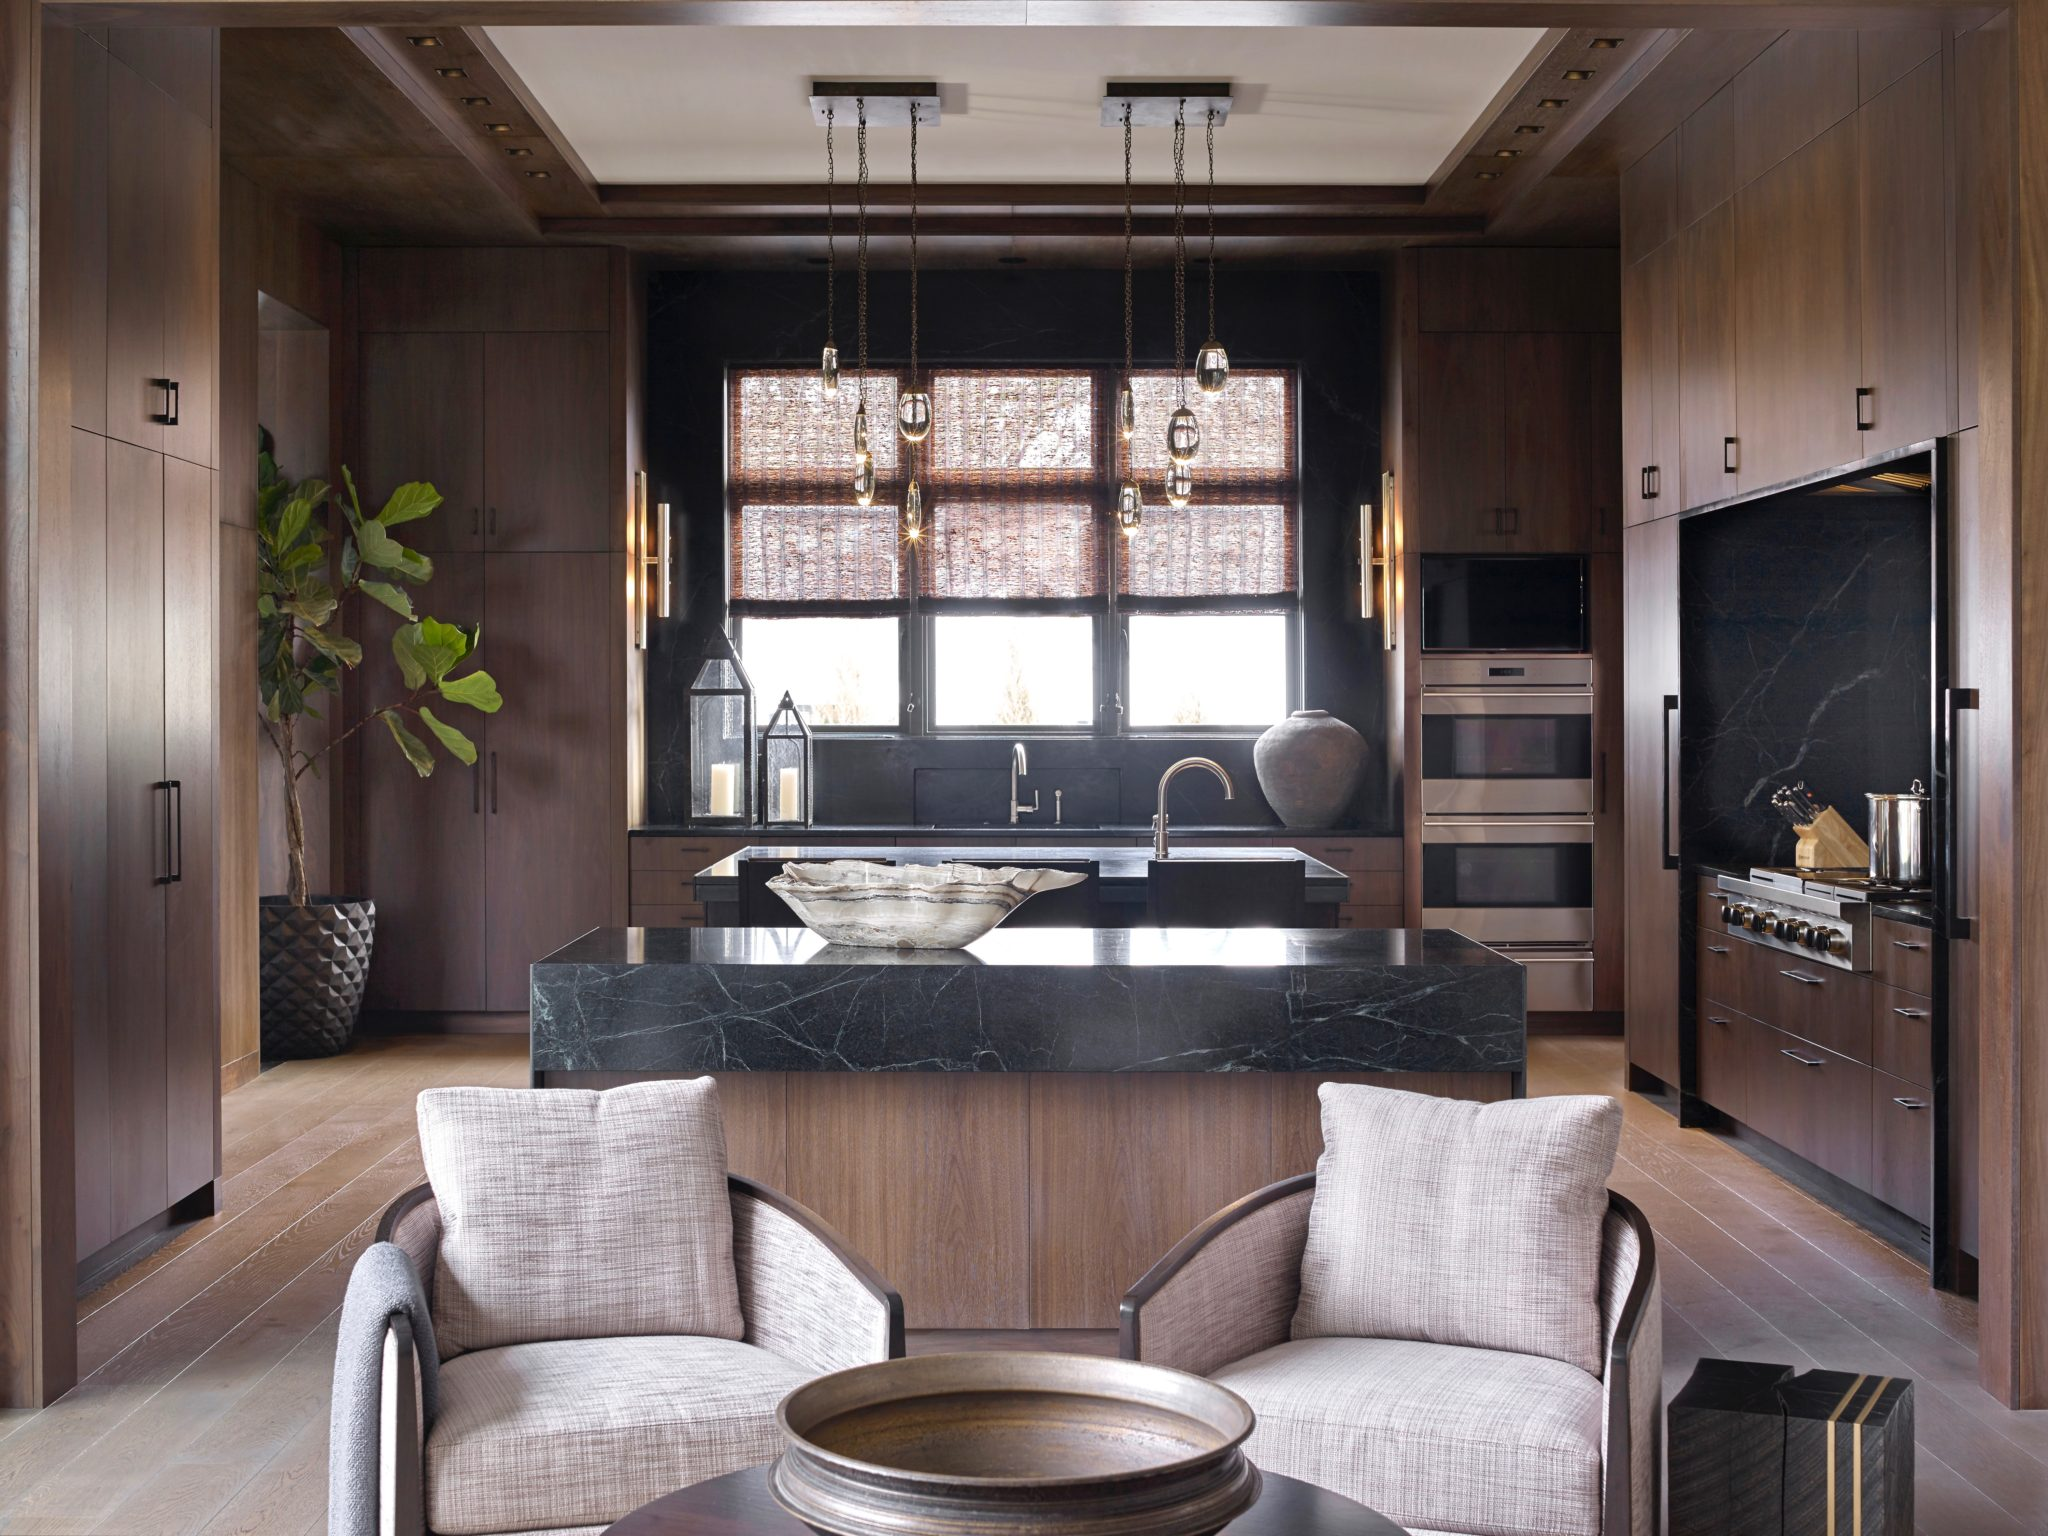 A stylish kitchen mixing dark woods and marble by Joel Kelly Design